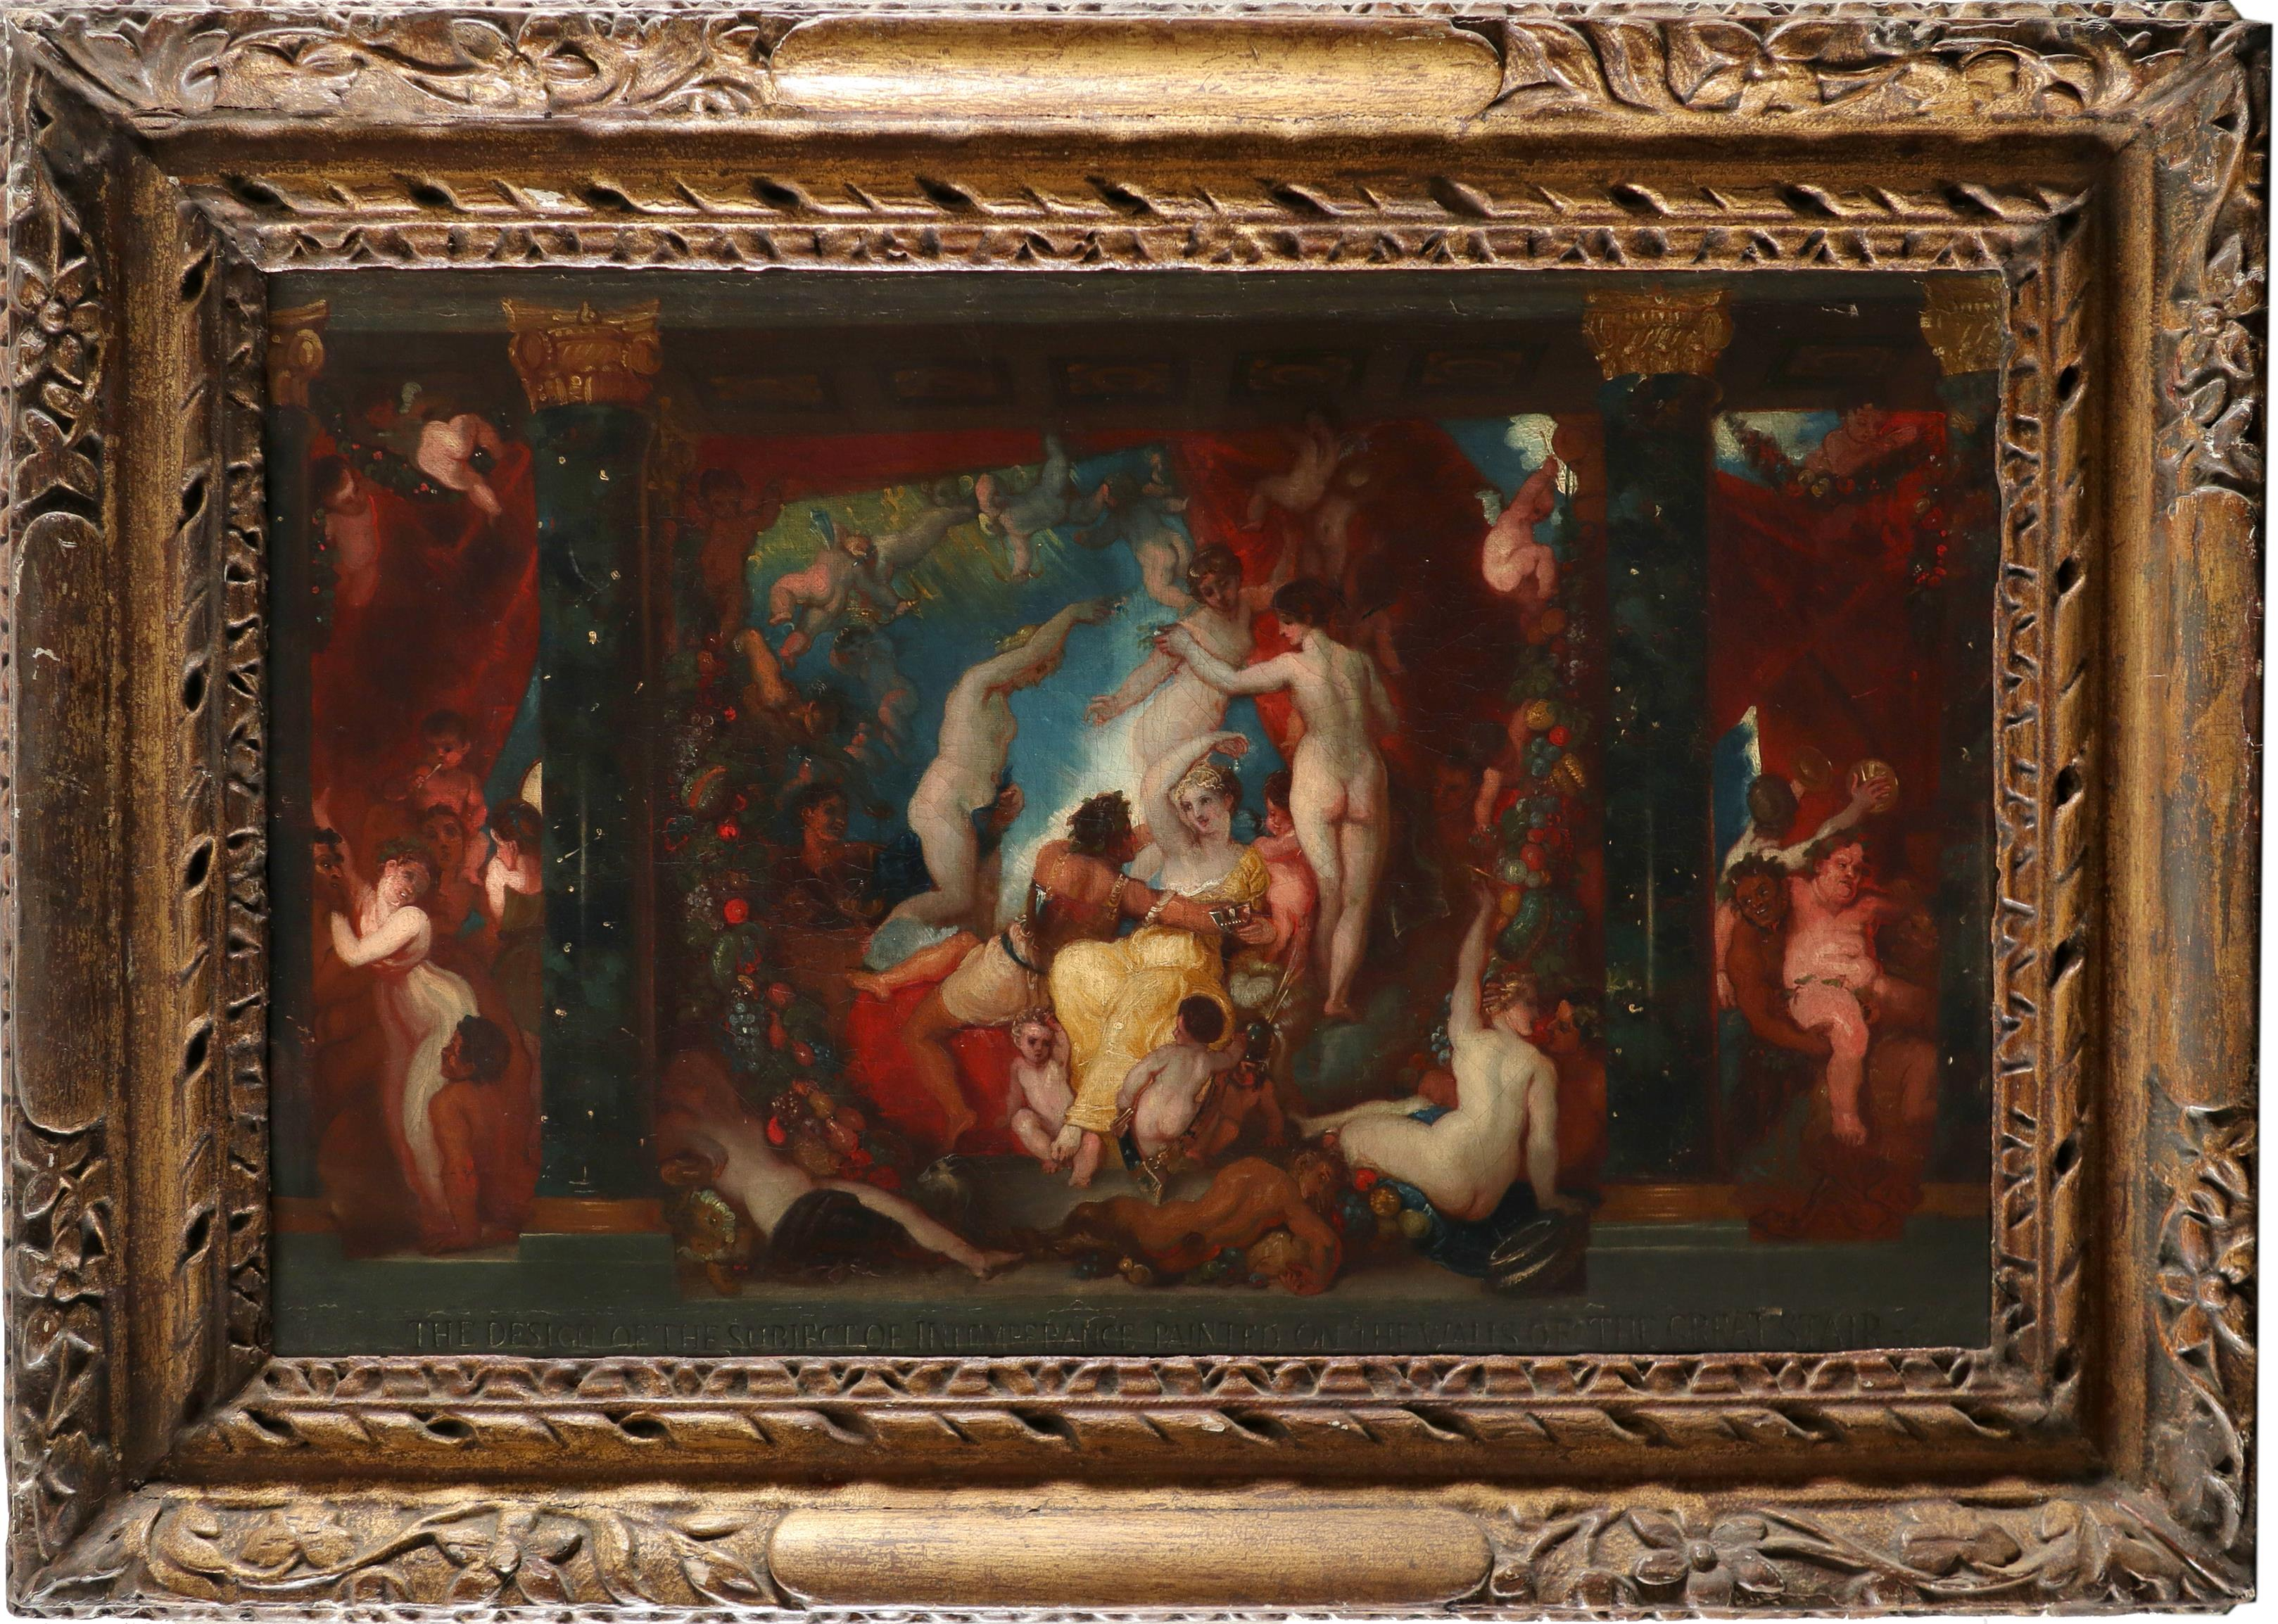 Thomas Stothard RA (1755-1834) Intemperance Inscribed THE DESIGN OF THE SUBJECT OF INTEMPERANCE - Image 2 of 3